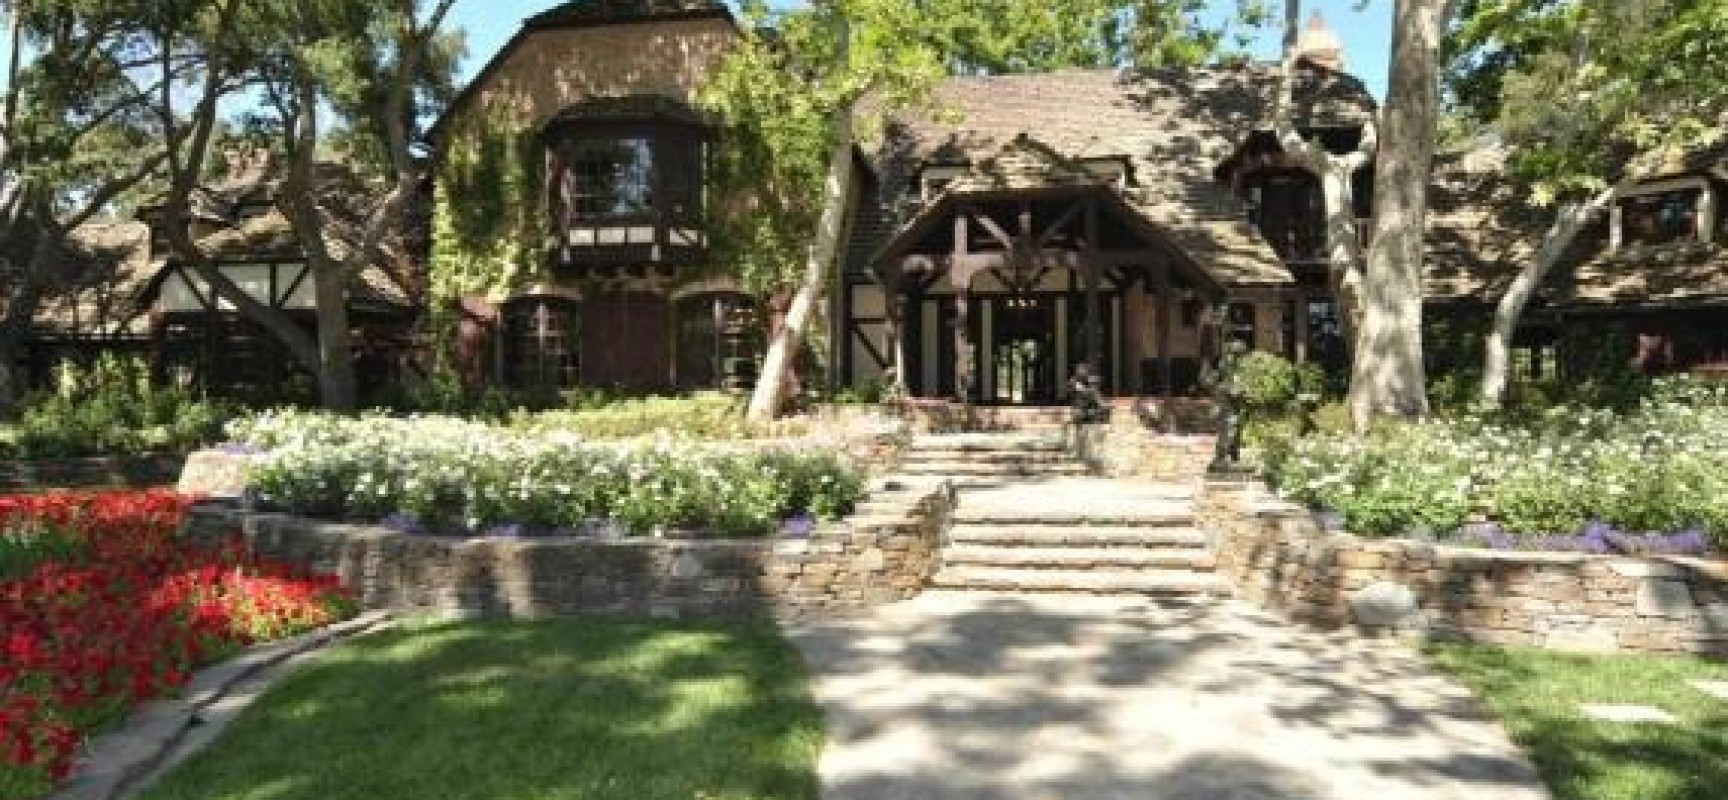 Michael jackson 39 s neverland ranch for sale for 100 for Michael jackson house for sale